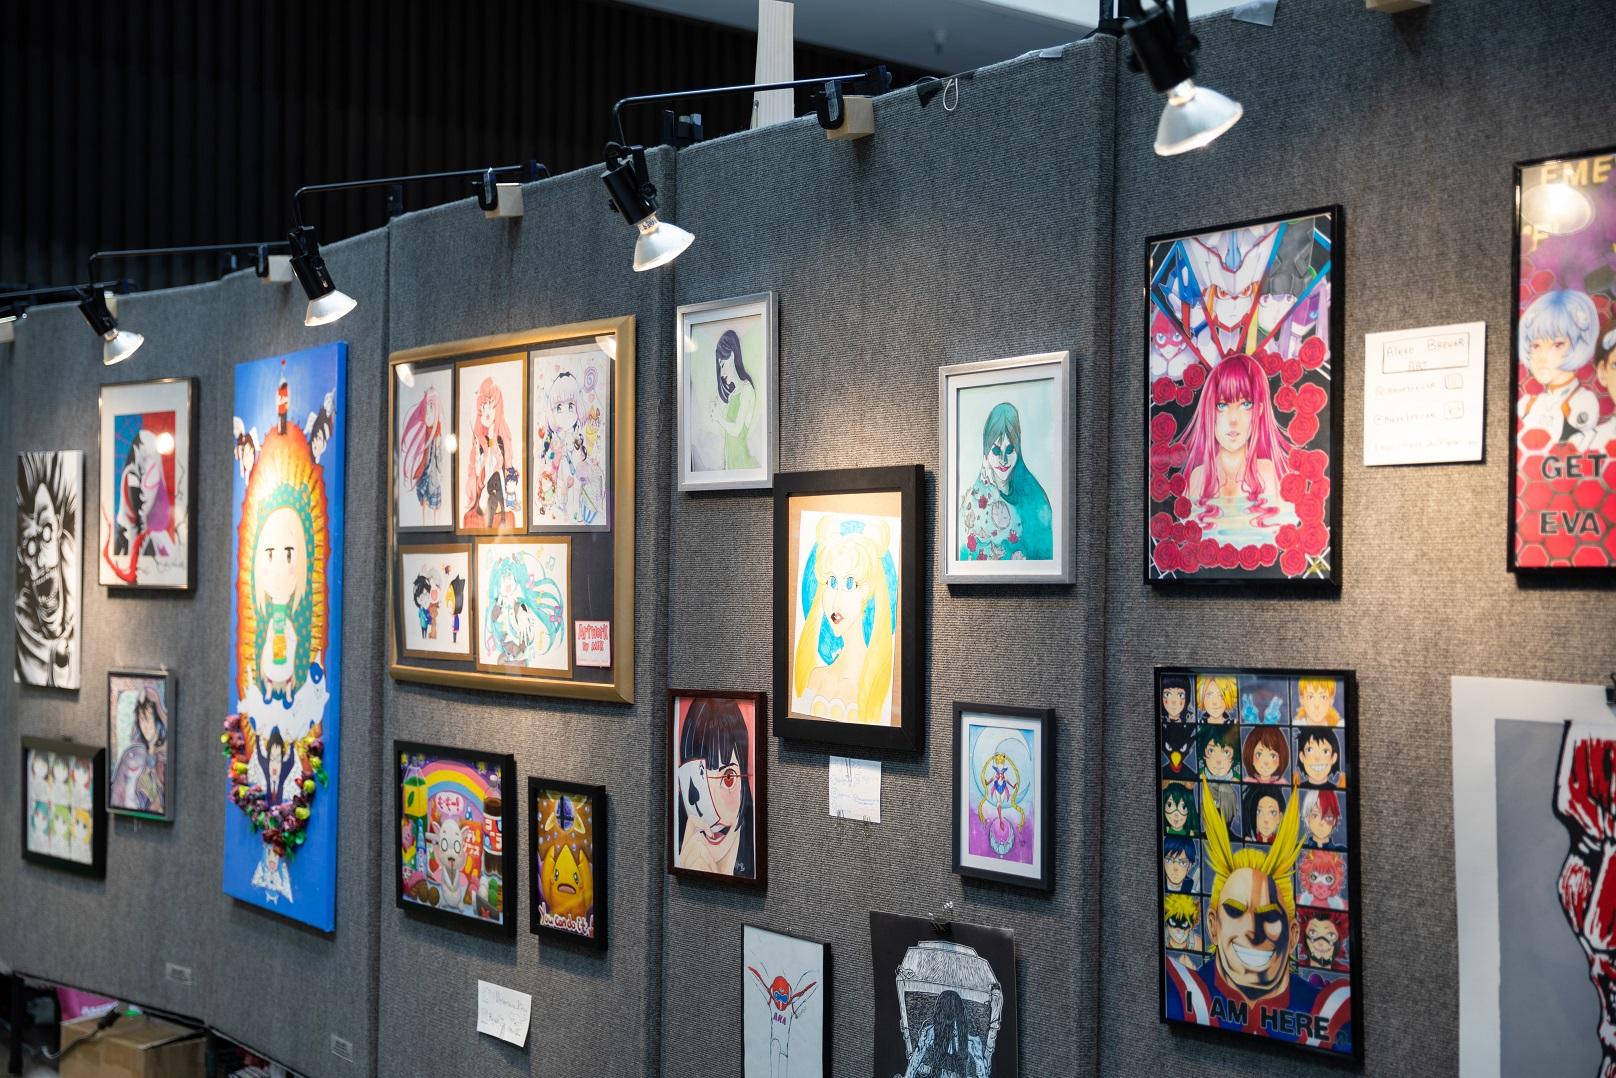 Anime Expo Art Shows Los Angeles Anime Convention